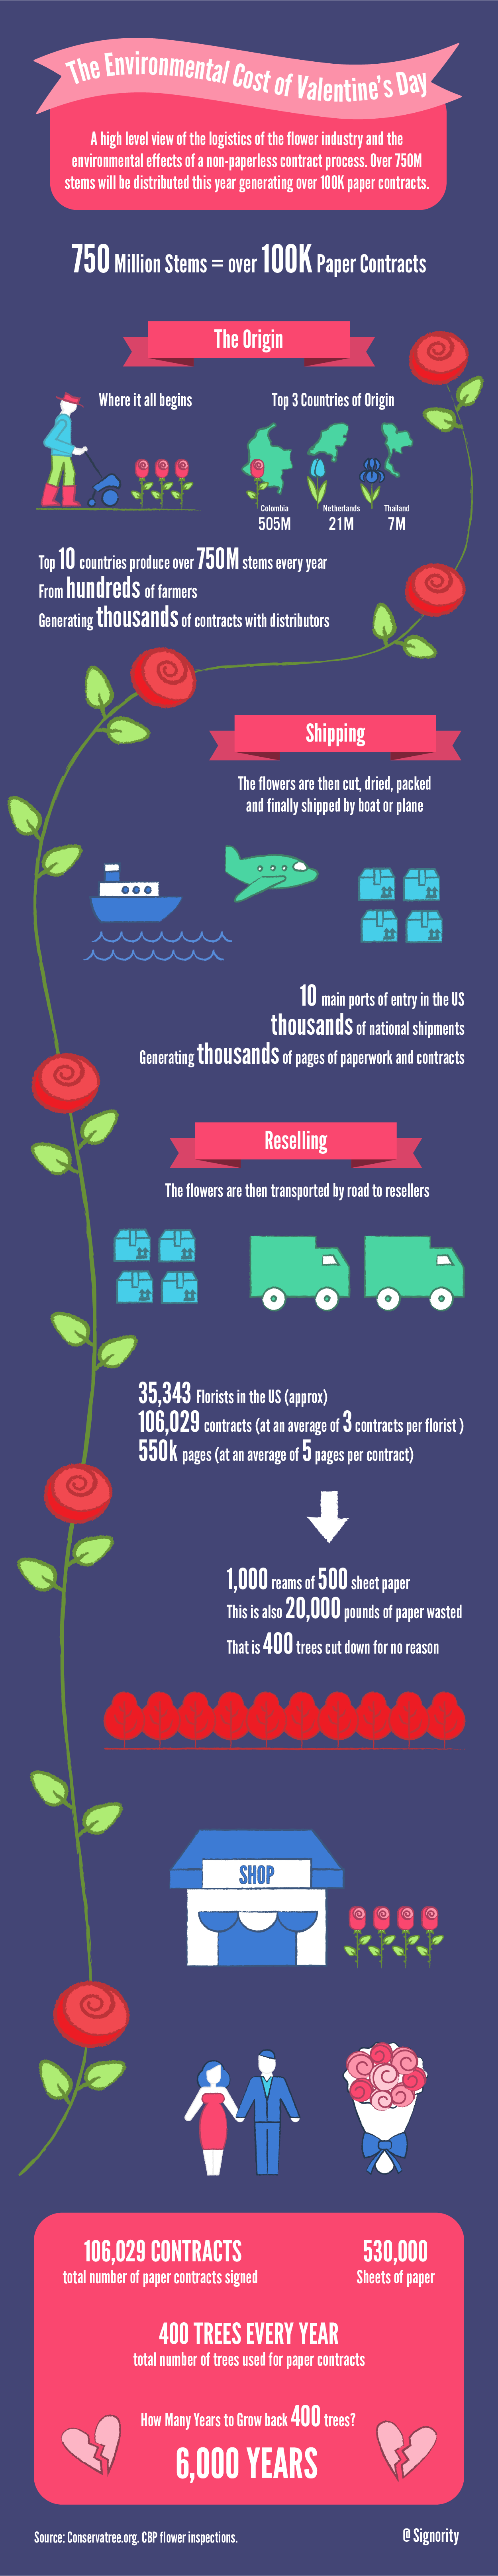 The Environmental Cost of Paper Contracts on Valentine's Day #ValentinesDay #ValentinesDay2017 #Infographic